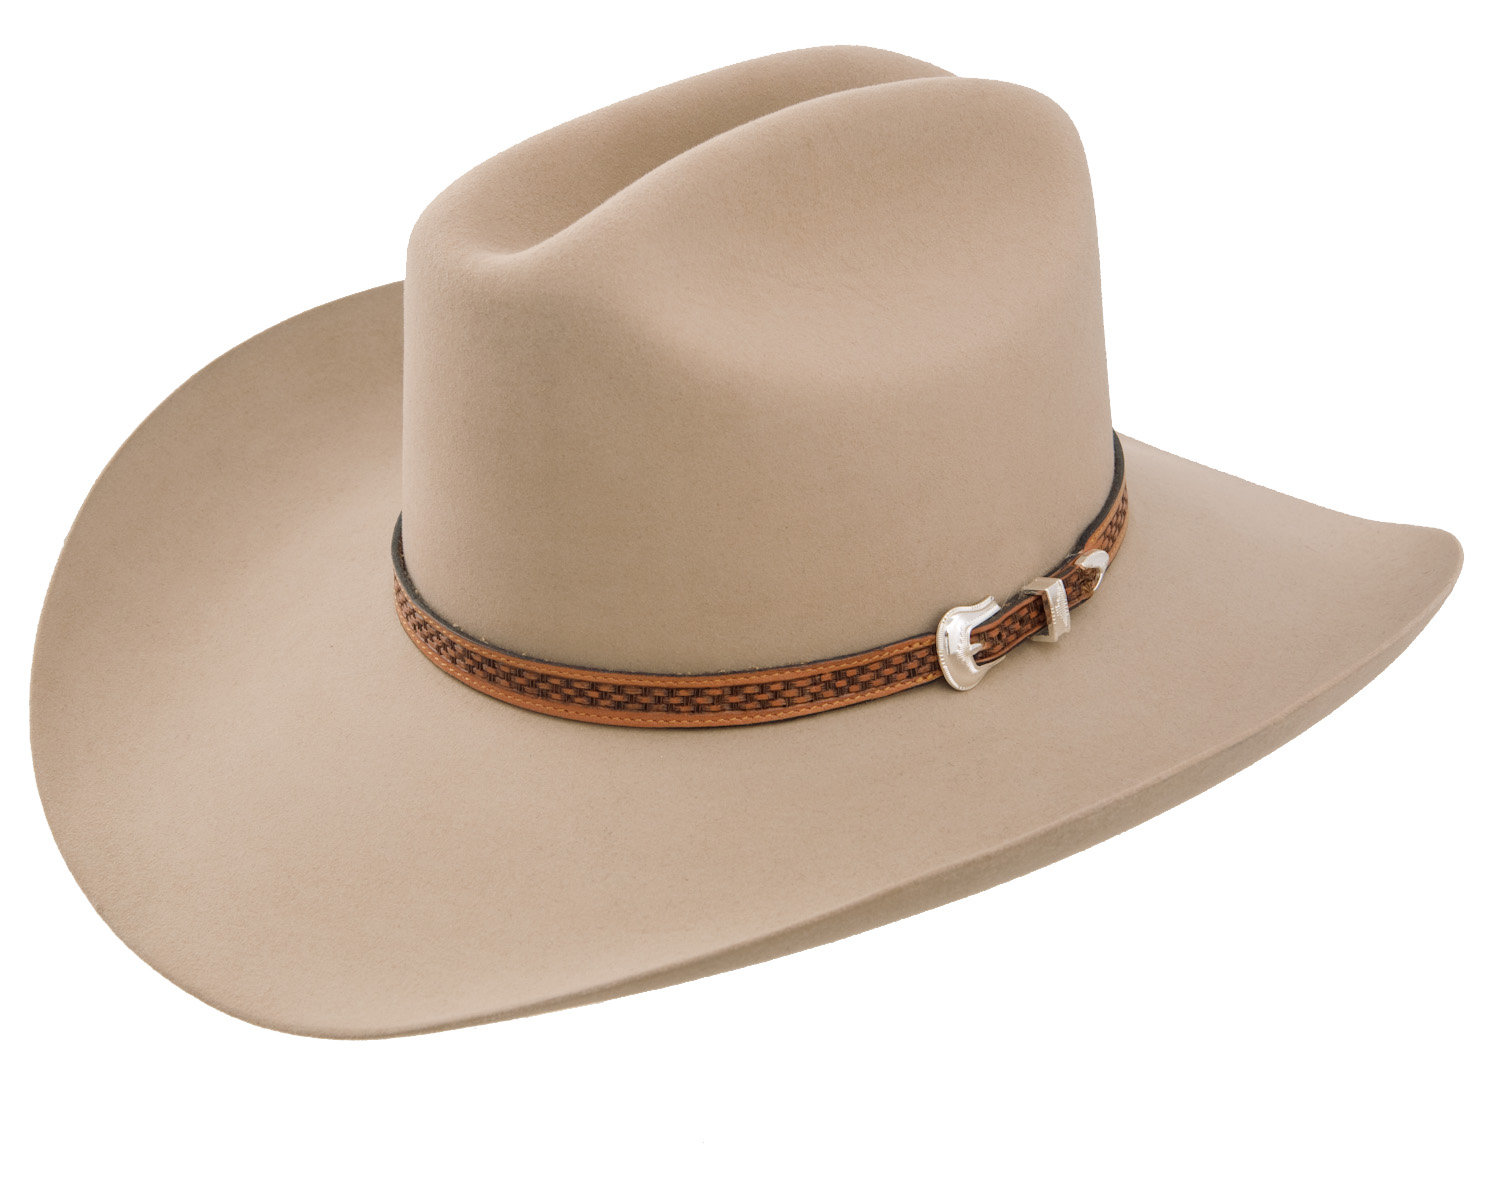 Cowboy Hats Myths And Superstition